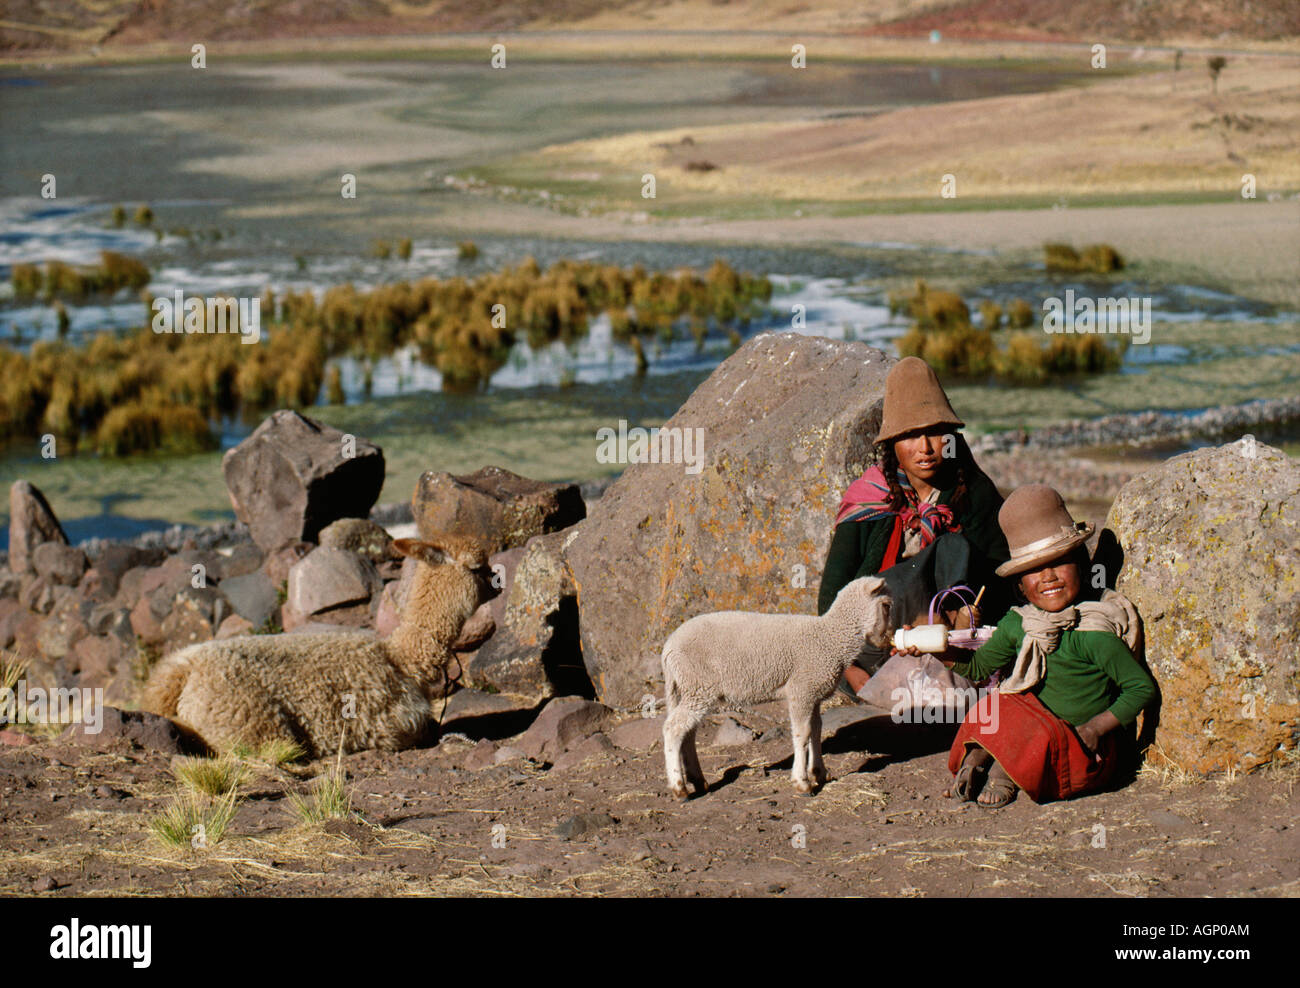 Peru, Titicaca lake, Tequile island, Indian daughter with mother feeding lamb - Stock Image